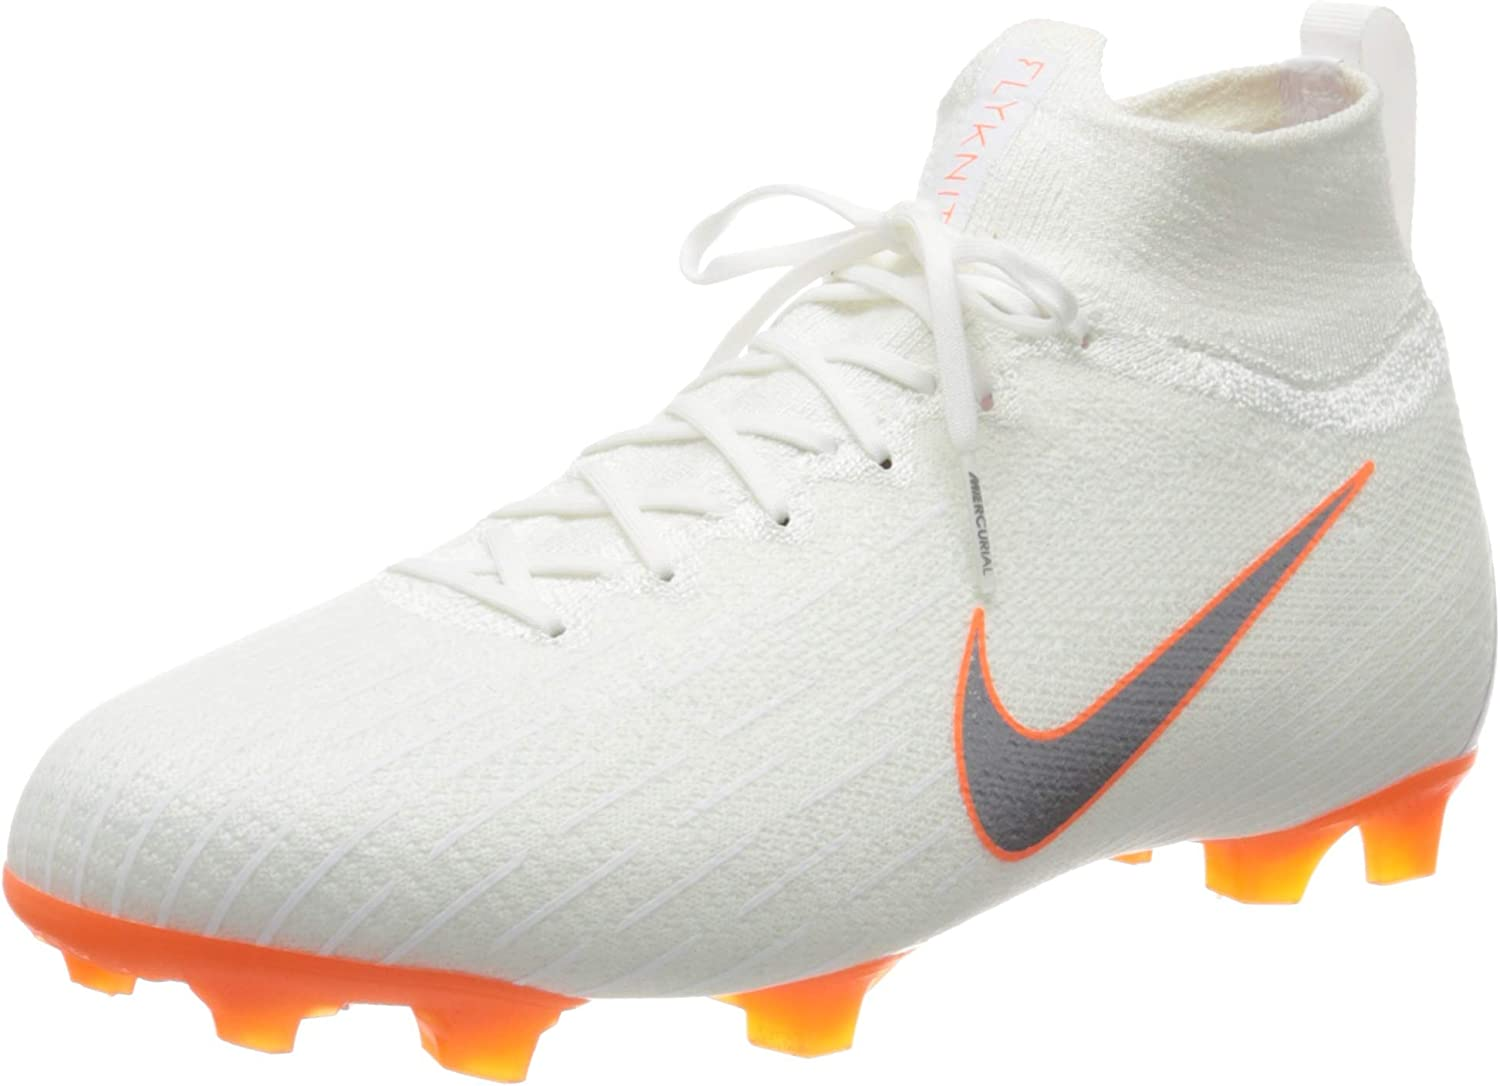 Nike JR Superfly 6 Elite Firm Ground Cleat